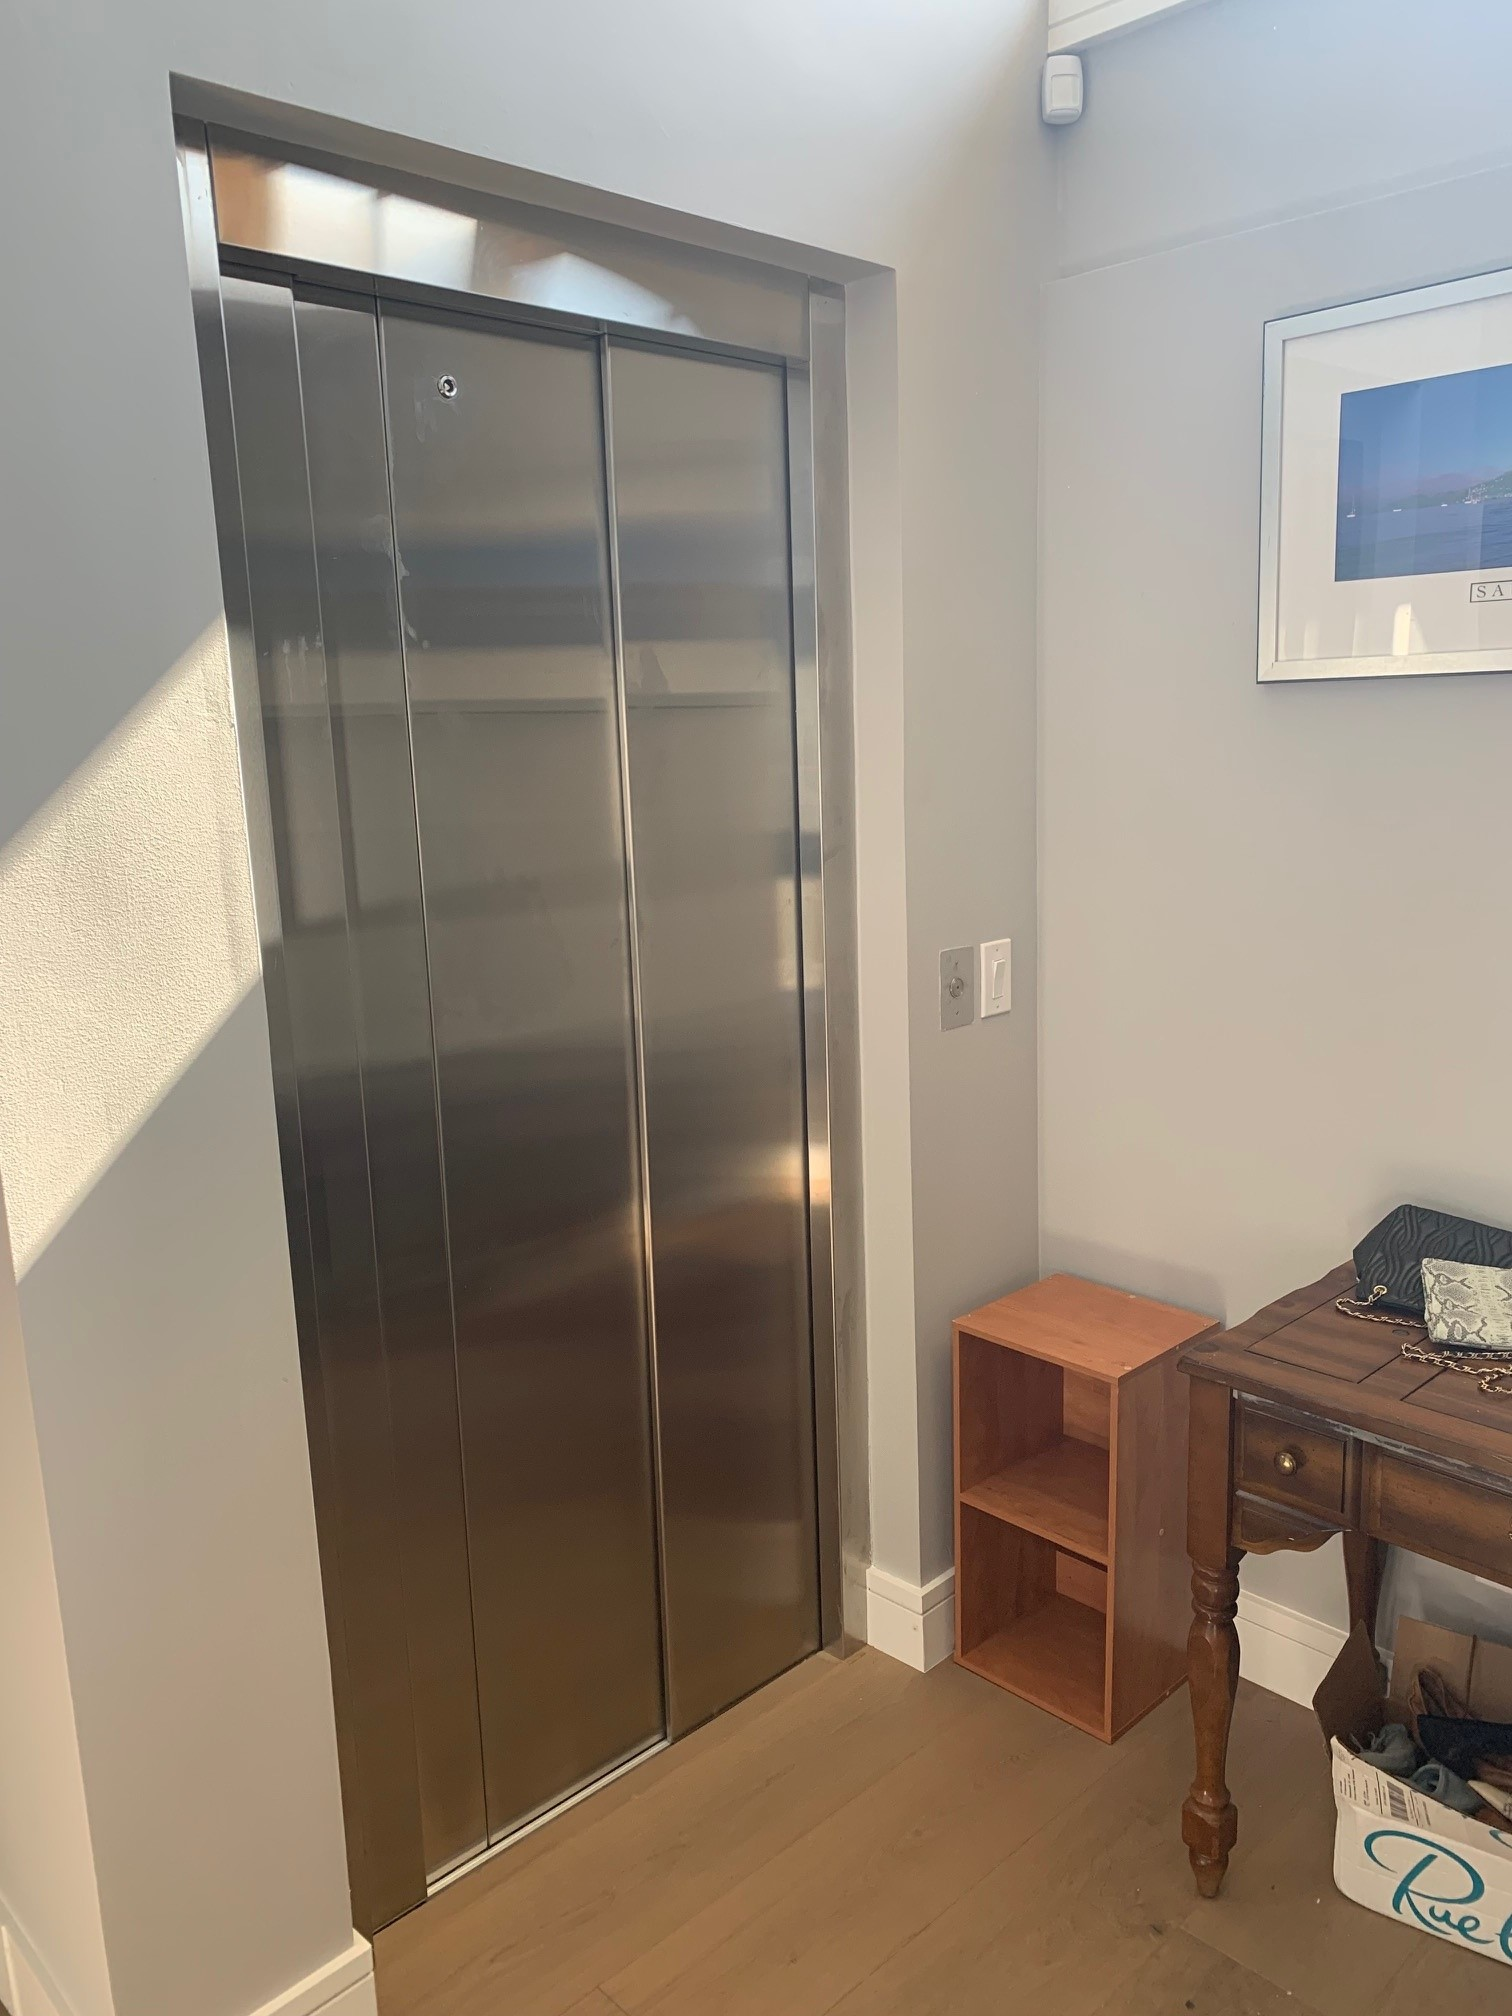 Savaria Eclipse with Stainless Steel Slim-Line Doors Showcased In-Home